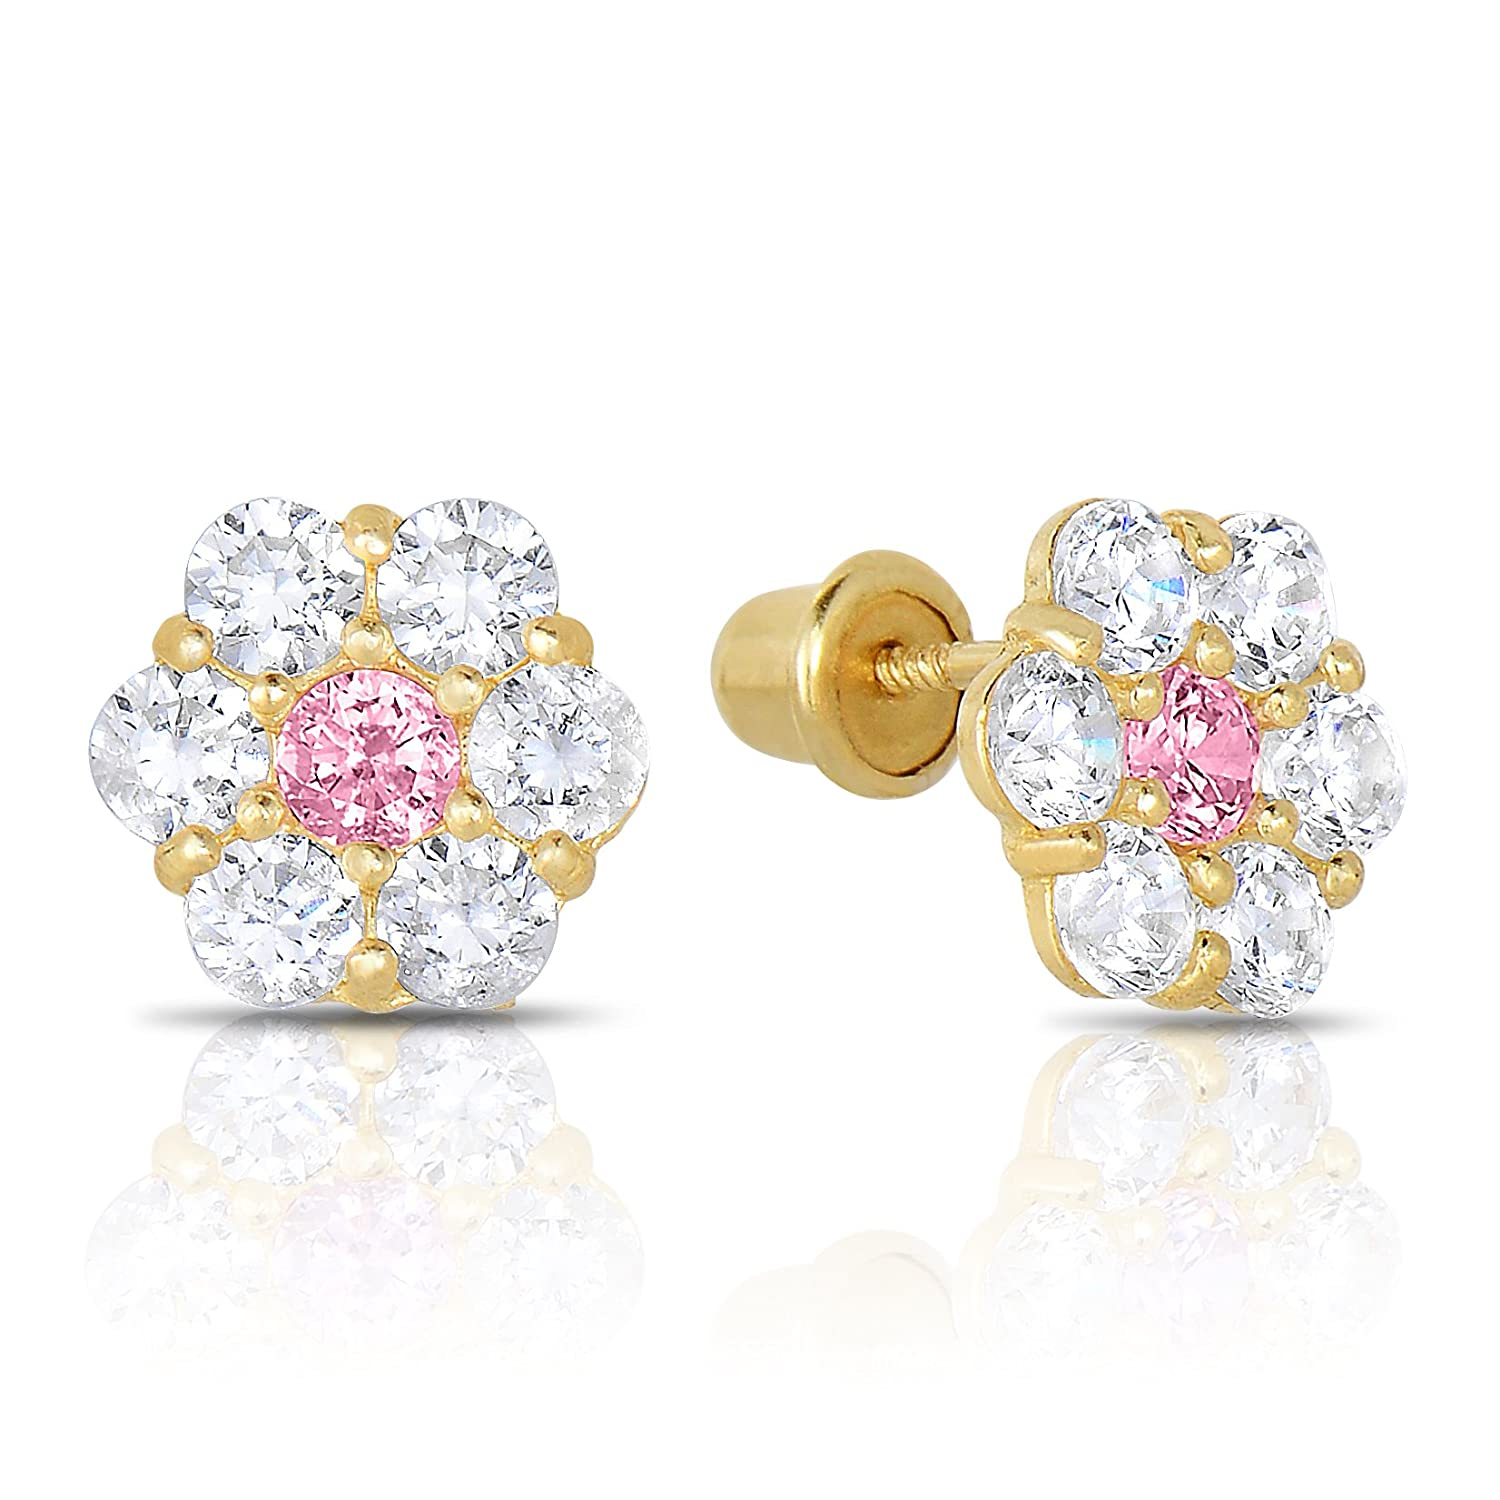 14k Yellow Gold Flower Stud Halo Earrings in Cubic Zirconia with Secure Safety Screw-backs Manufactured for Art and Molly 19-10-N